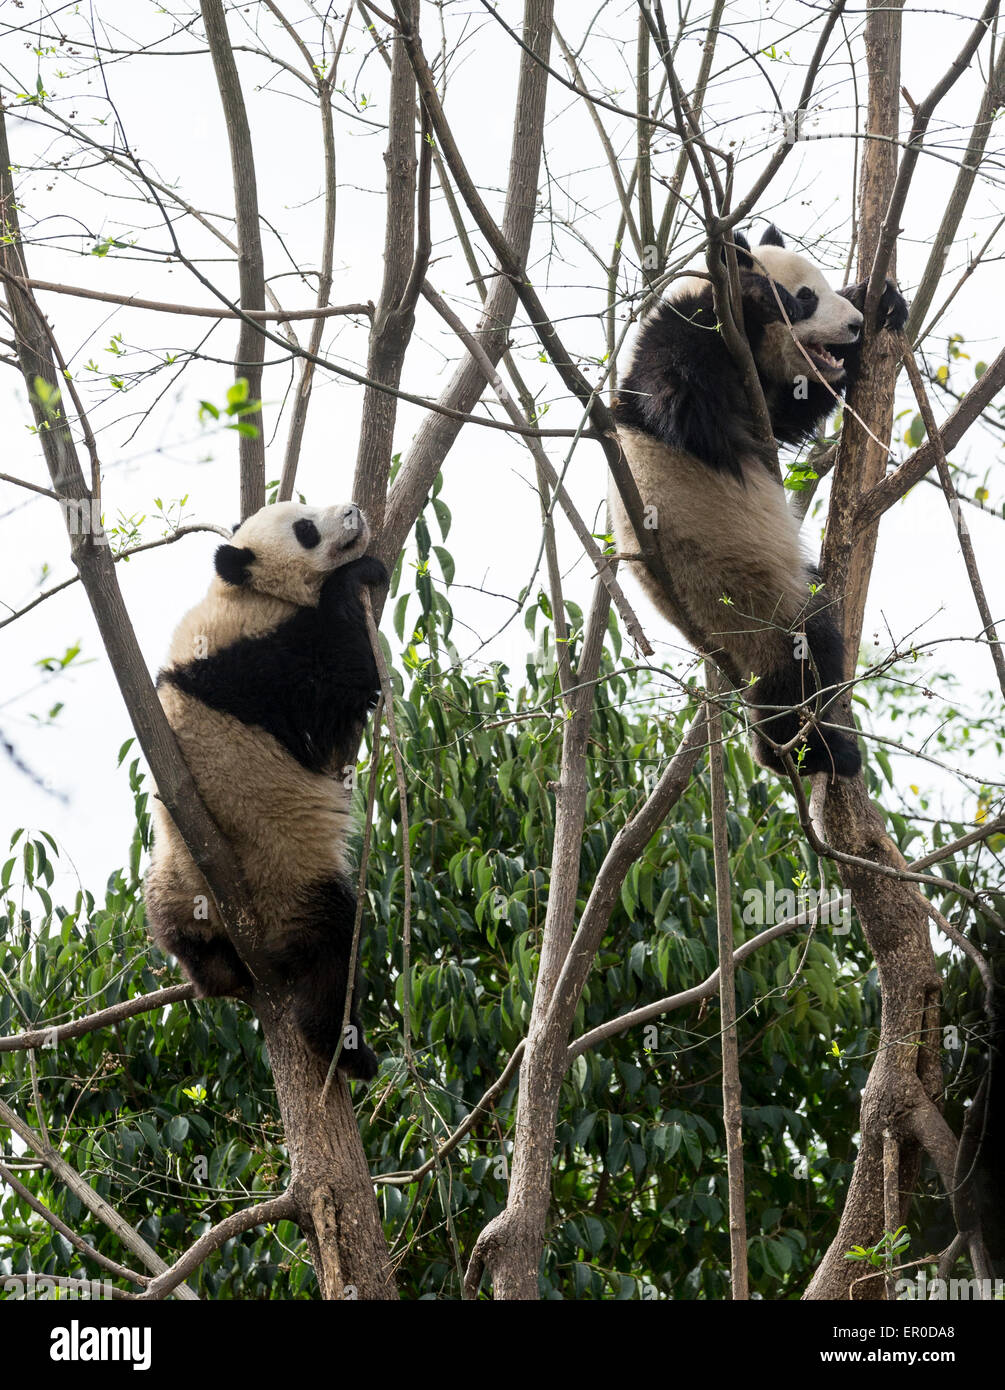 Tow giant pandas (Ailuropoda melanoleuca) climbing trees at Chengdu Panda Breeding and Research Center - Stock Image